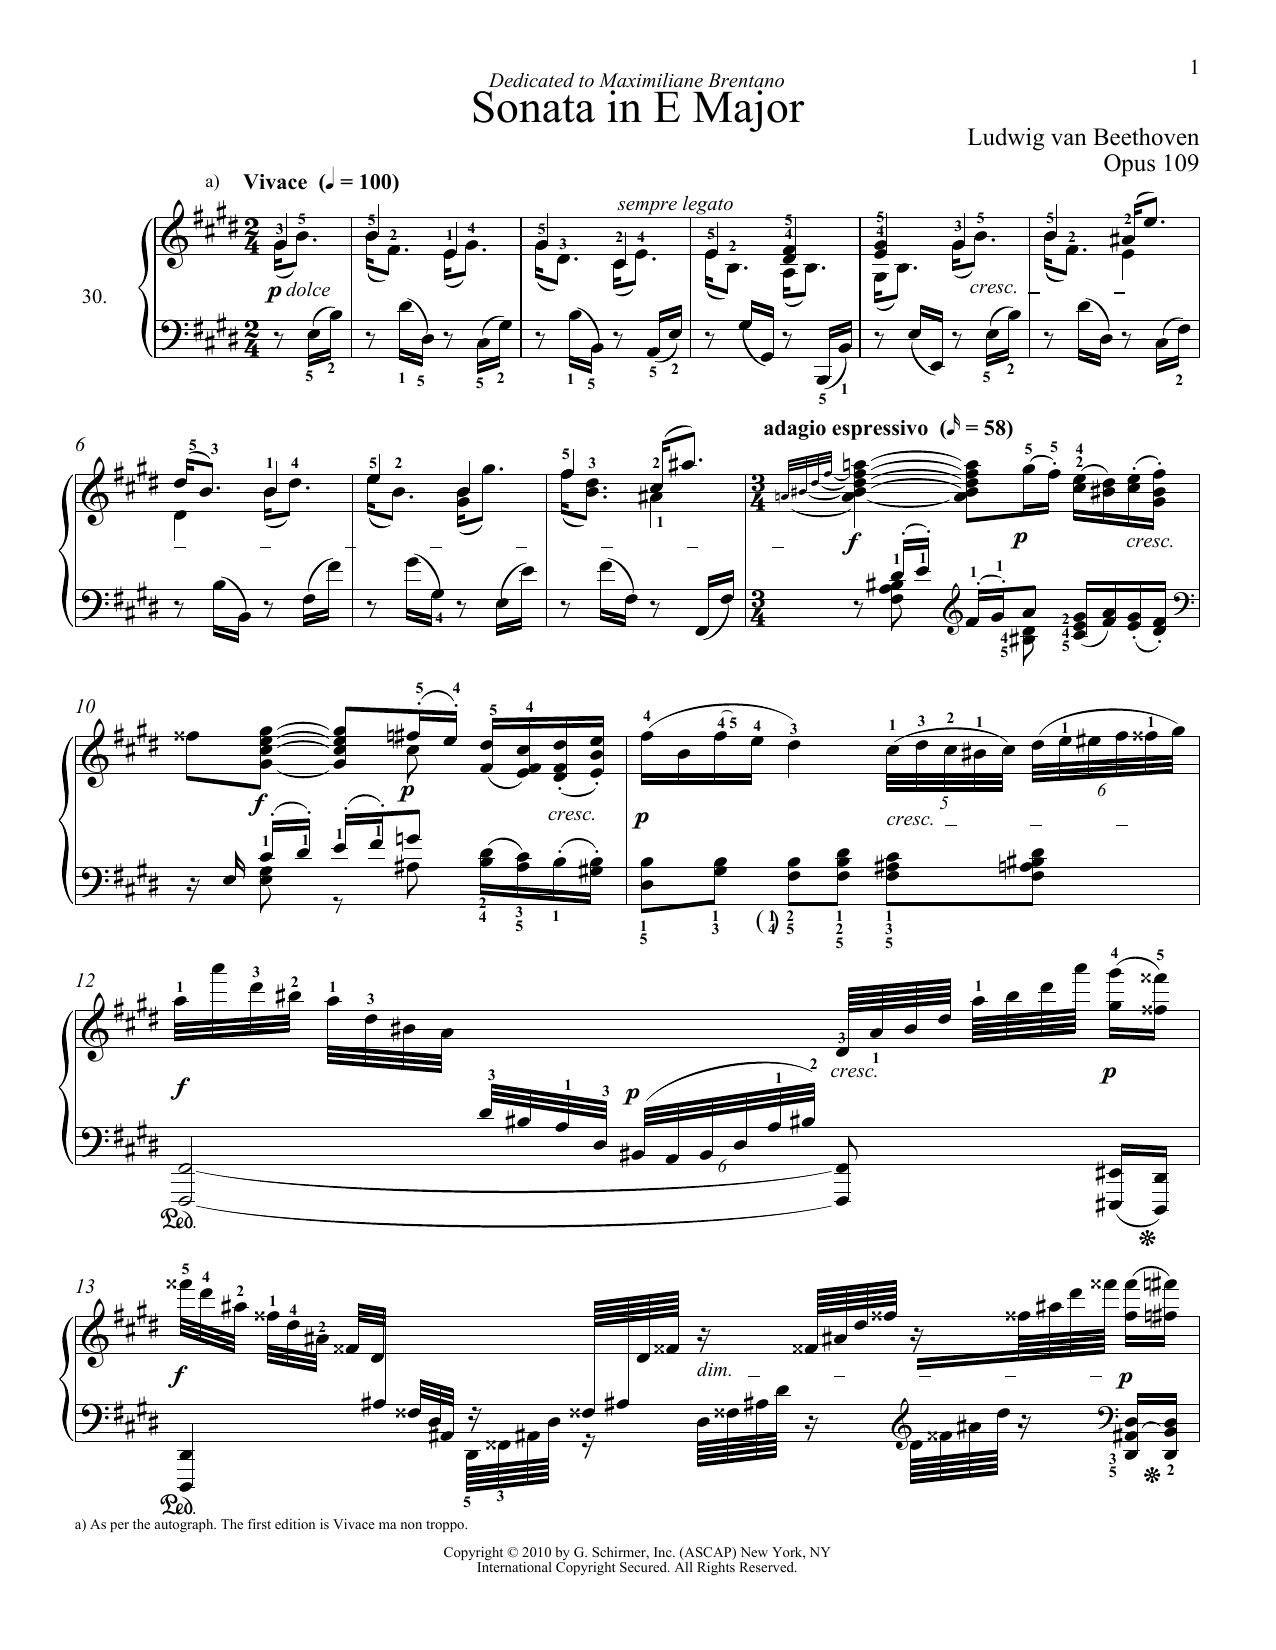 Piano Sonata No. 30 In E Major, Op. 109 Sheet Music